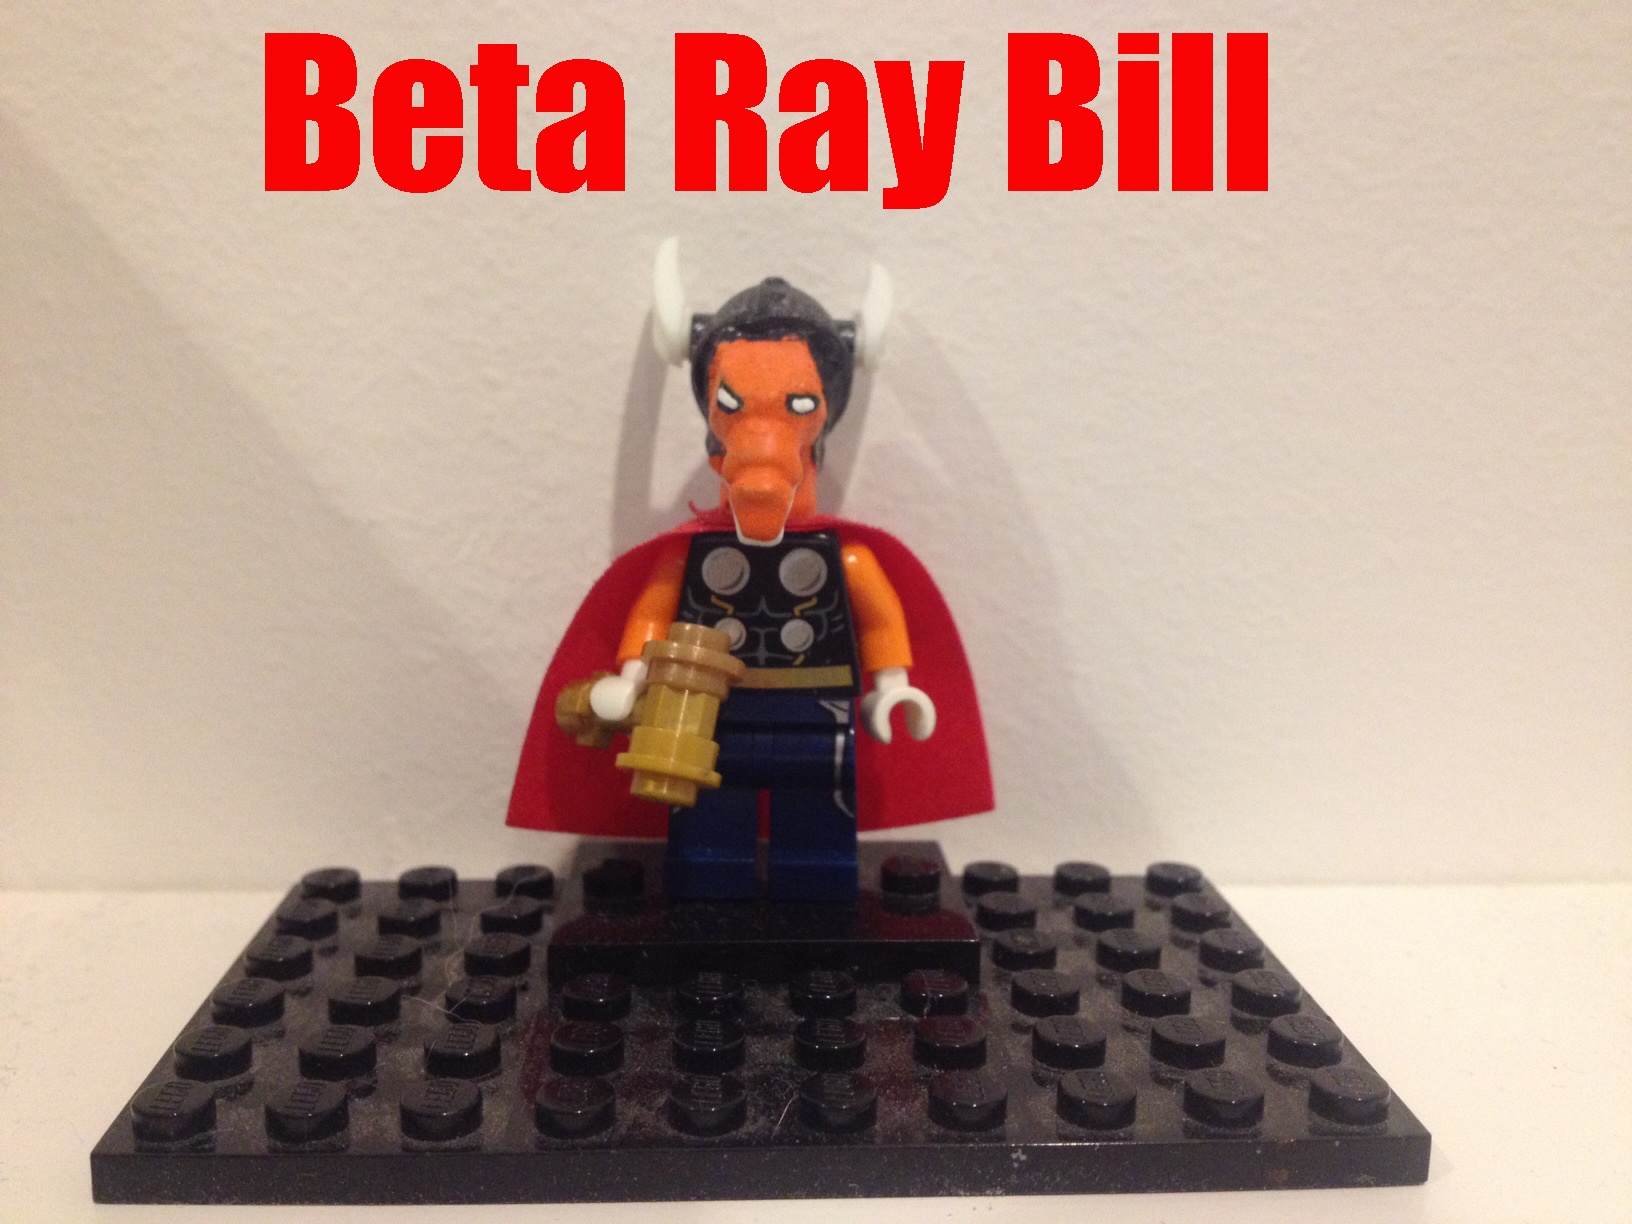 lego beta ray bill - photo #5